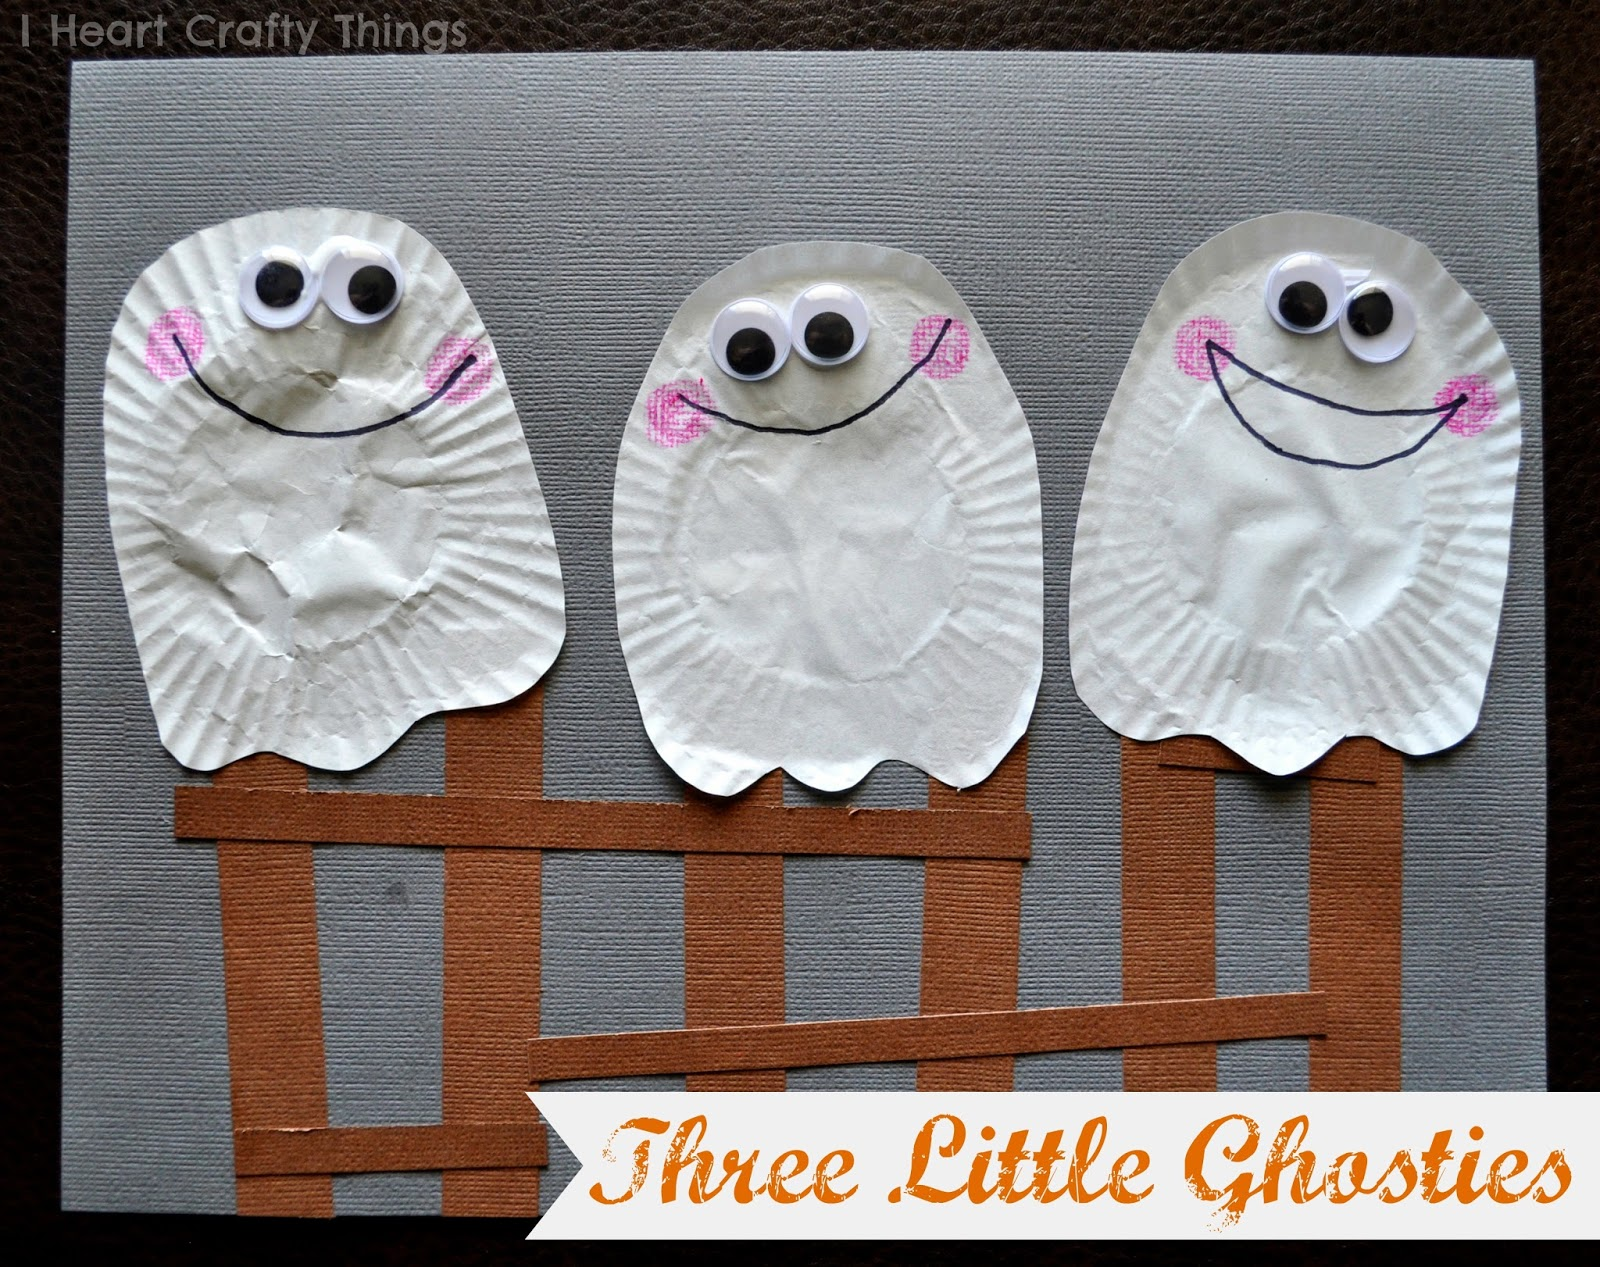 30 days of halloween three little ghosties kids craft i for Crafts for little kids